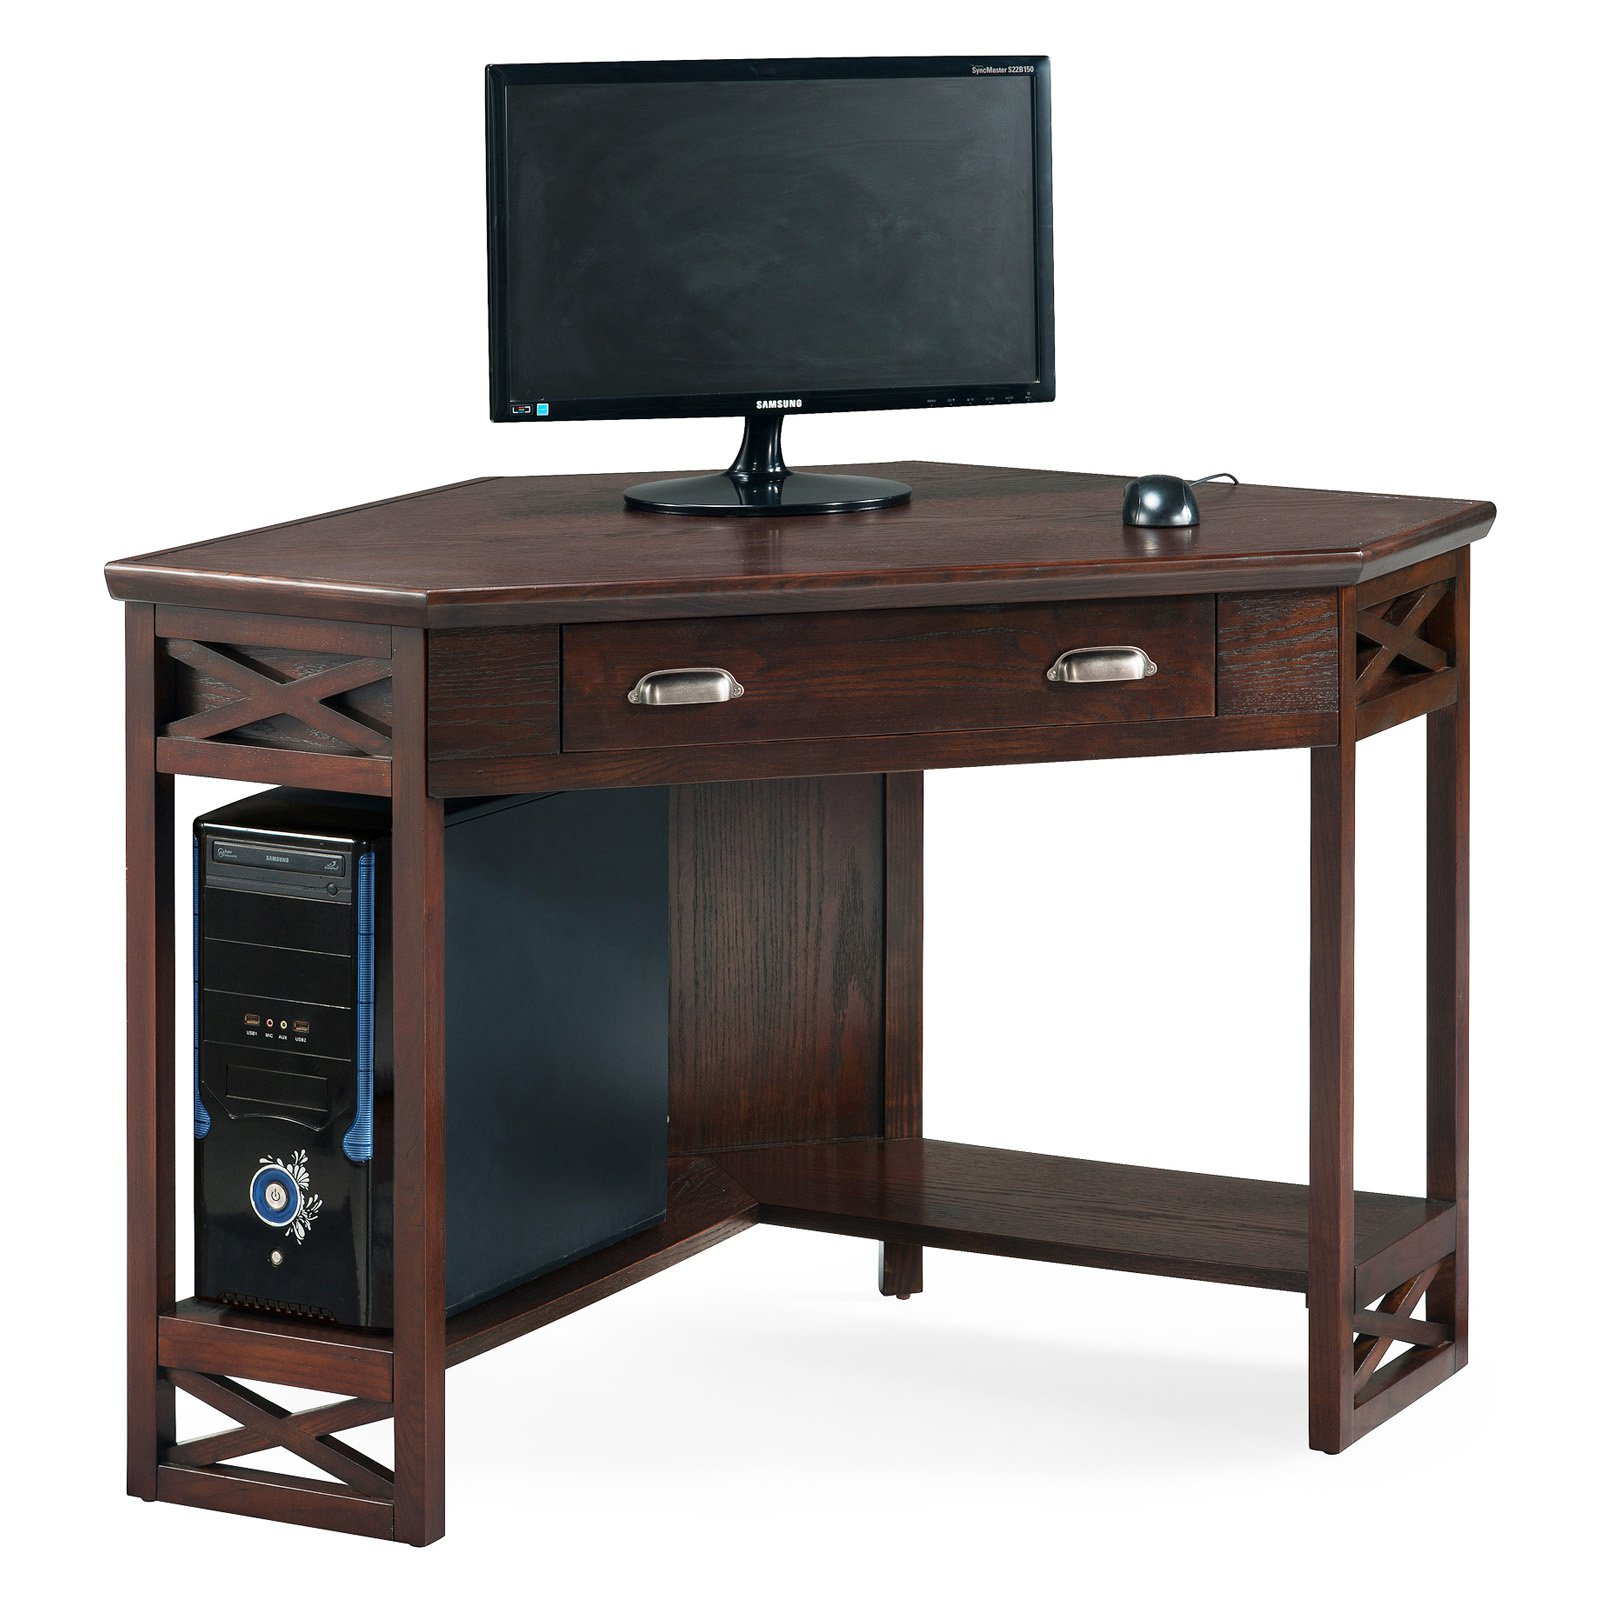 Leick 48 in. Corner Computer/Writing Desk - Chocolate Oak